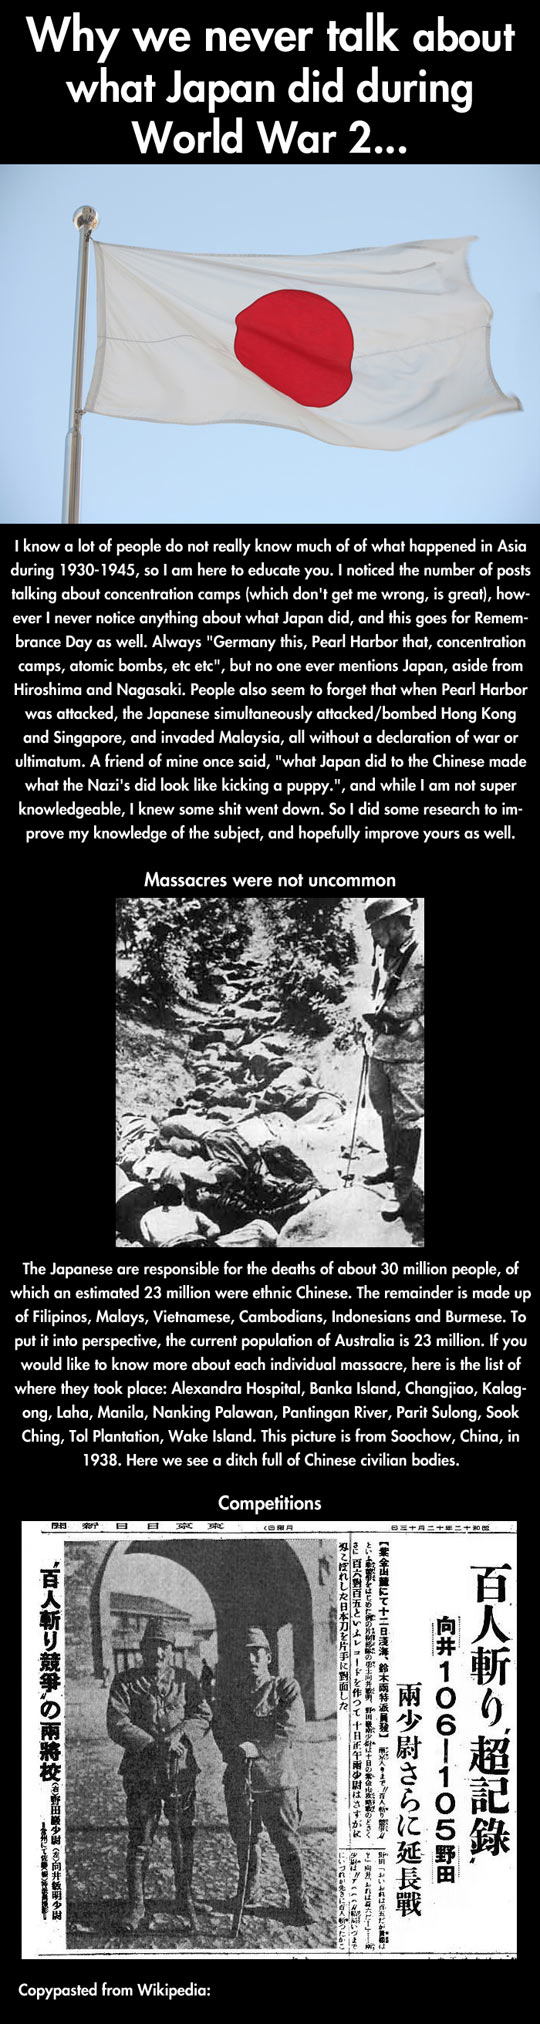 Did you know what Japan did in World War II...